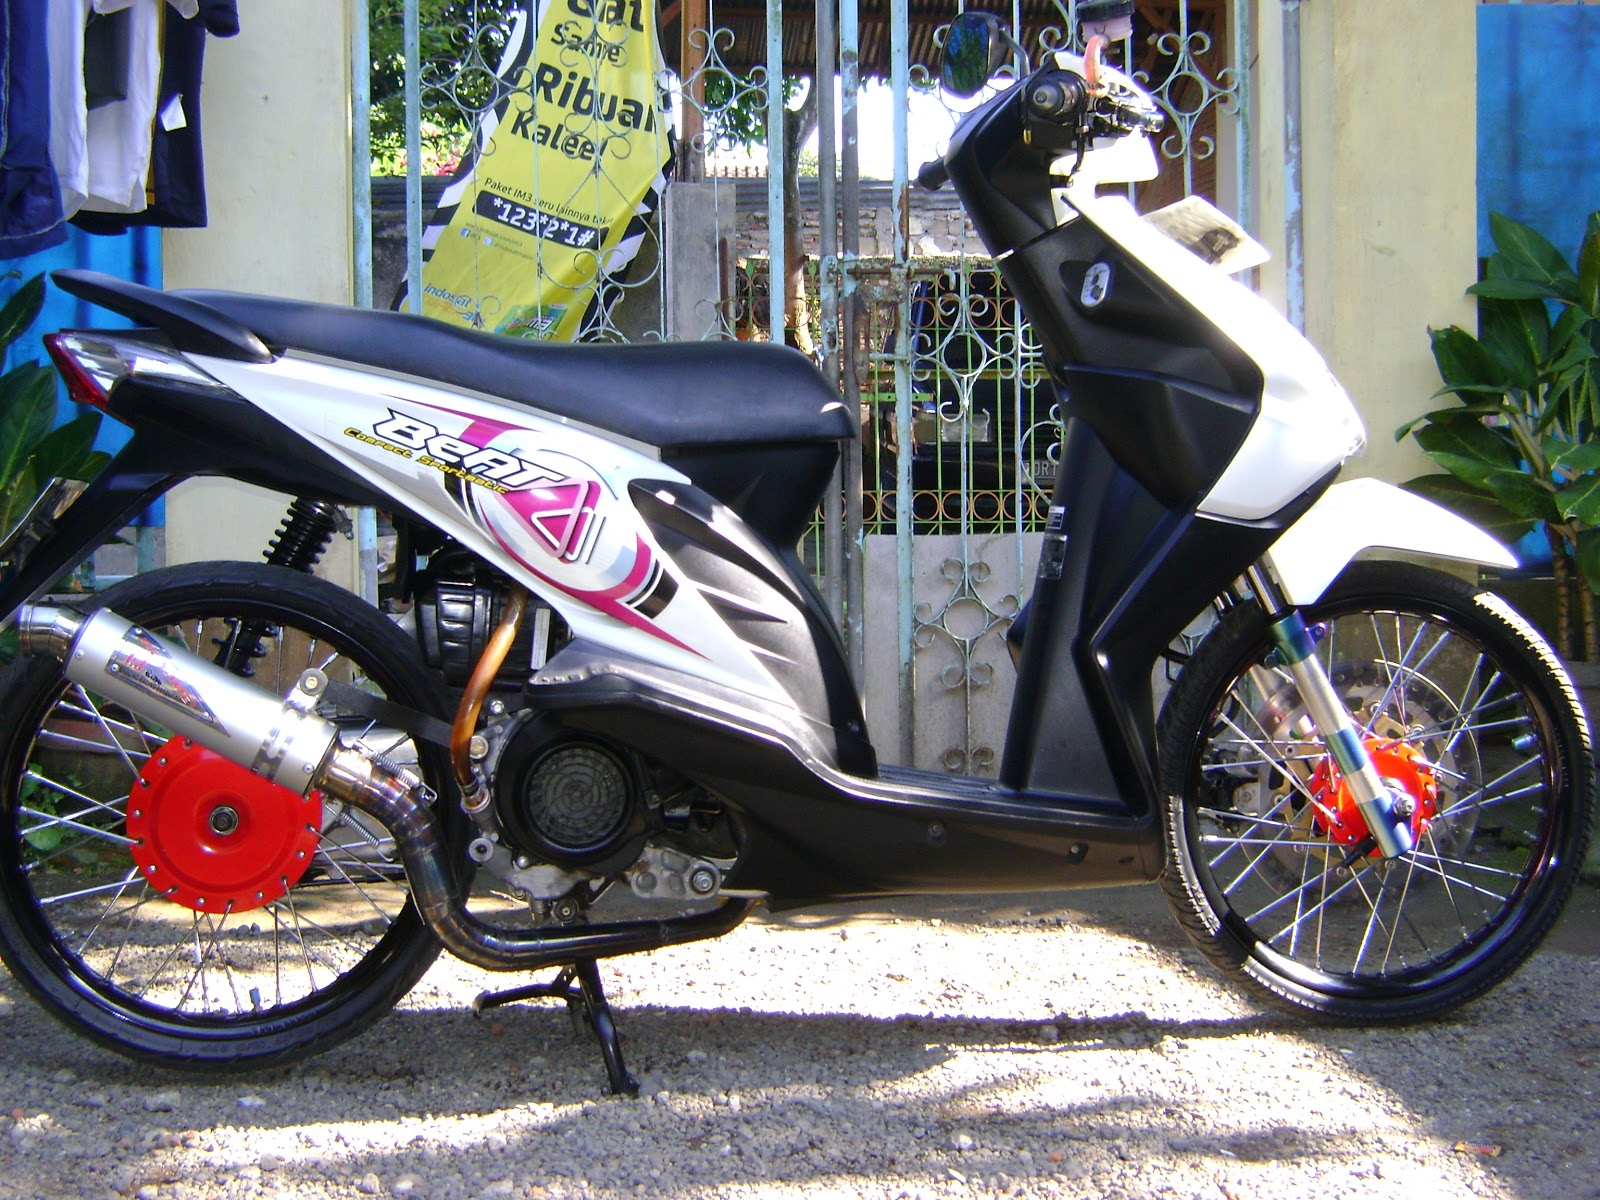 Modifikasi Honda BeAT Karburator Dengan Velg Ring 17 Jari